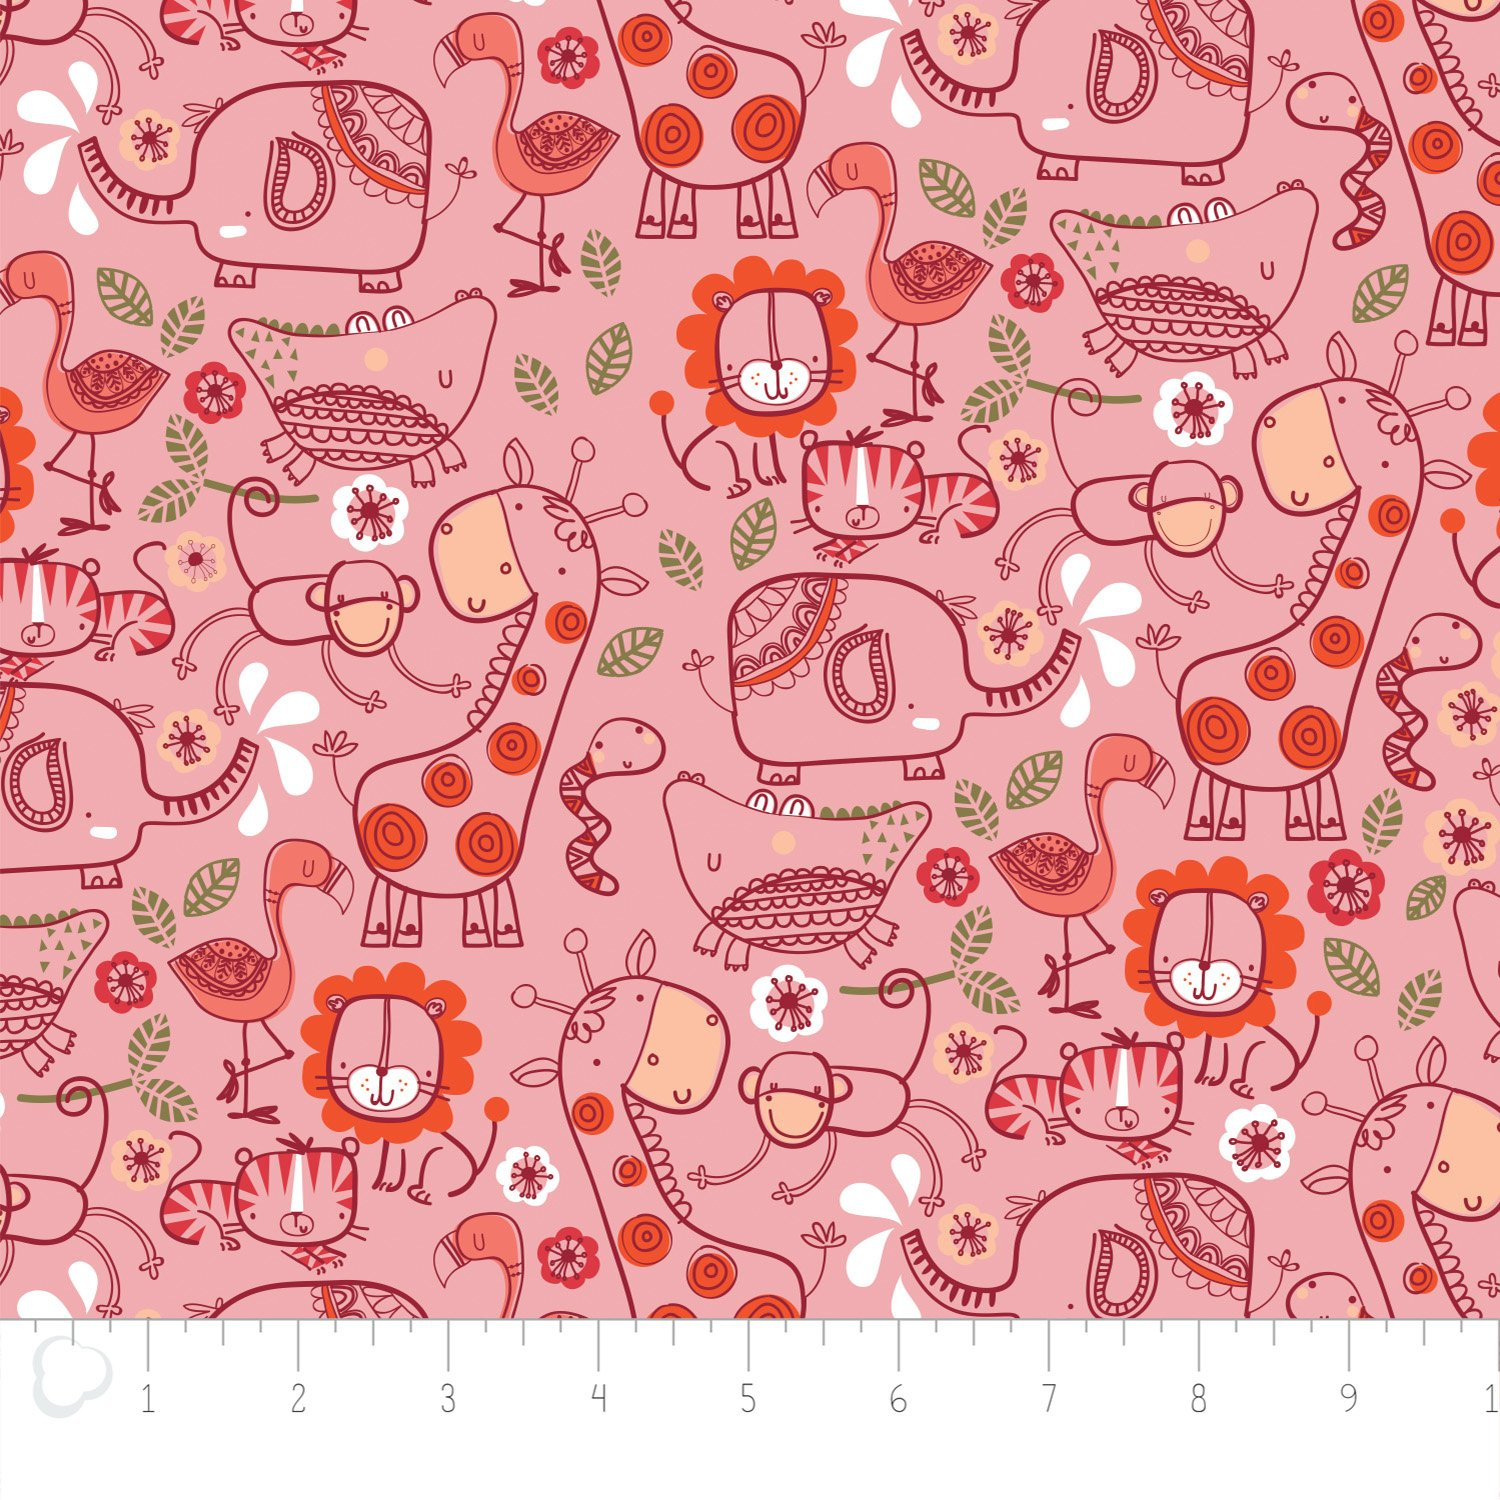 Camelot Fabrics - Jungle Line Art Printed Flannel - Pink